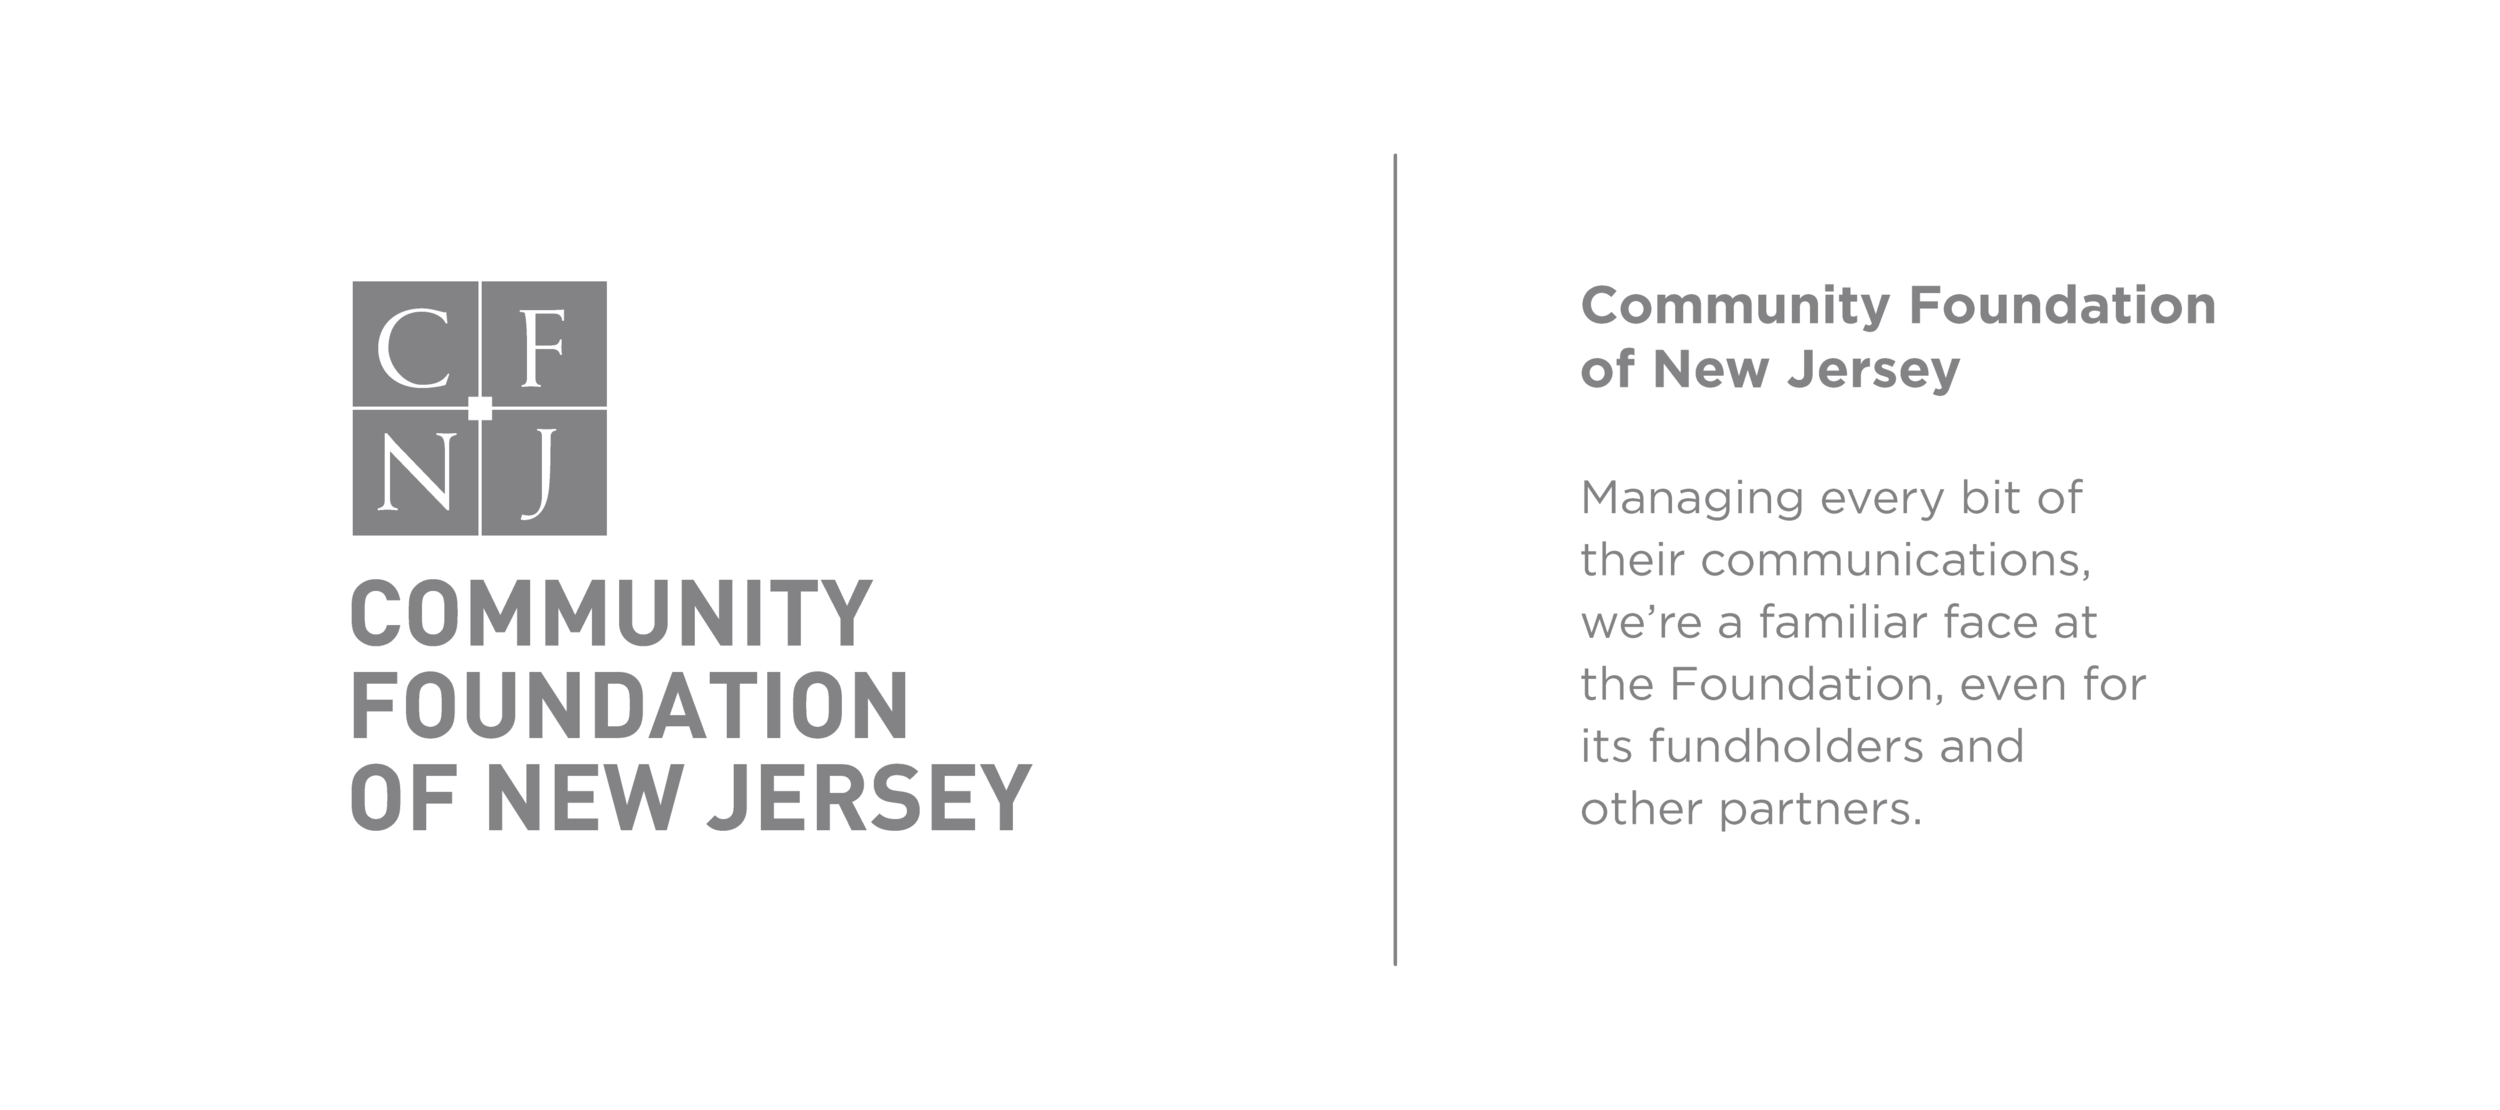 ASG-Community-Foundation-New-Jersey.png